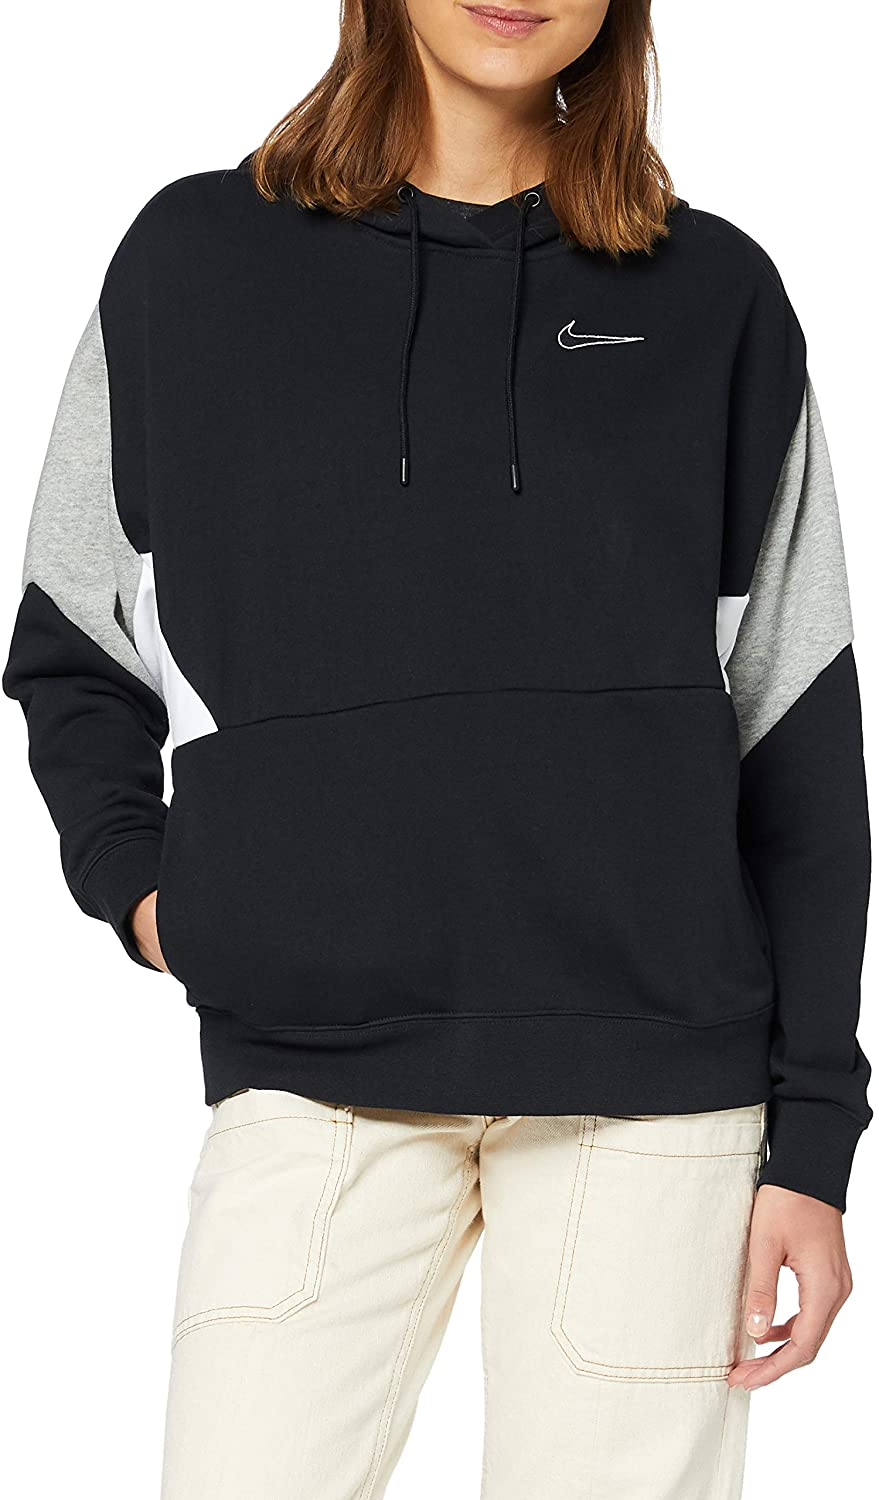 Nike Sportswear Womens French Terry Pullover Hoodie Cj3681-010